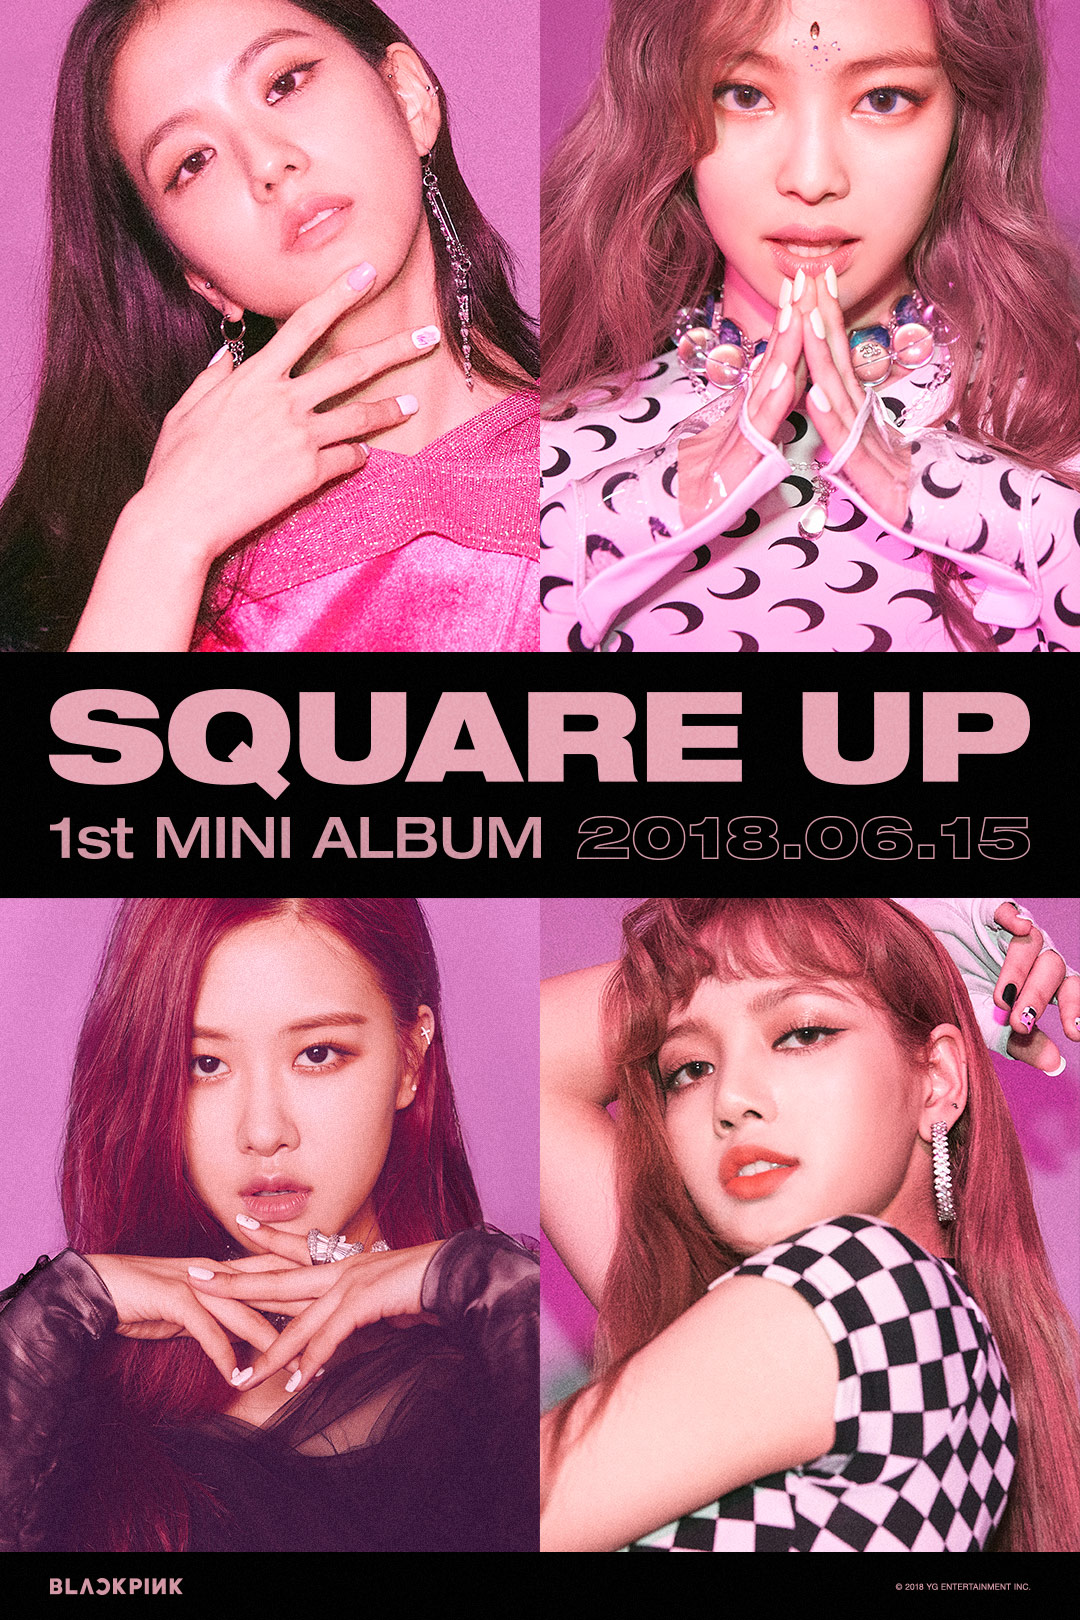 ☆TRENDING) BLACKPINK Is Now The 2nd Best-Selling Girl Group Of 2018